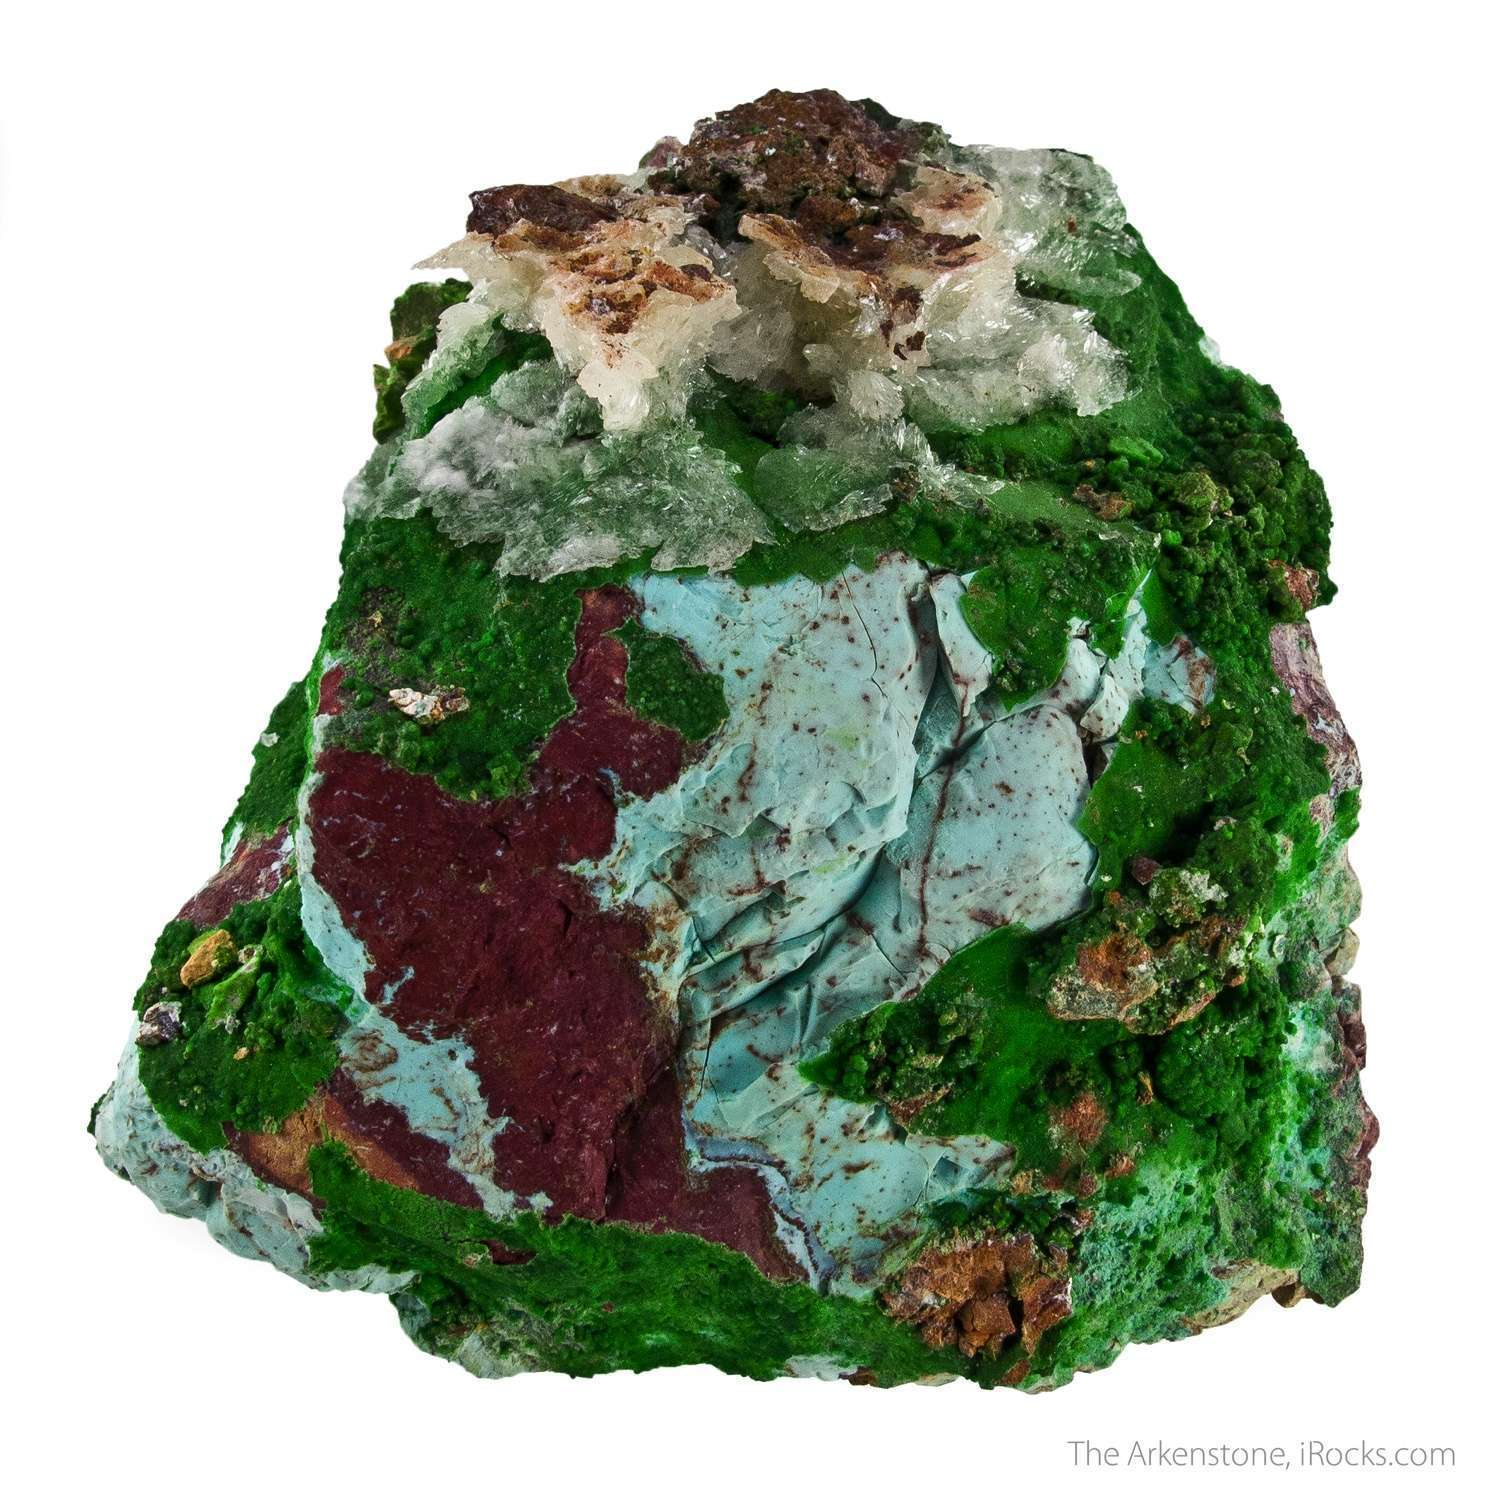 Patches bright green conichalcite microcrystals beautifully accent